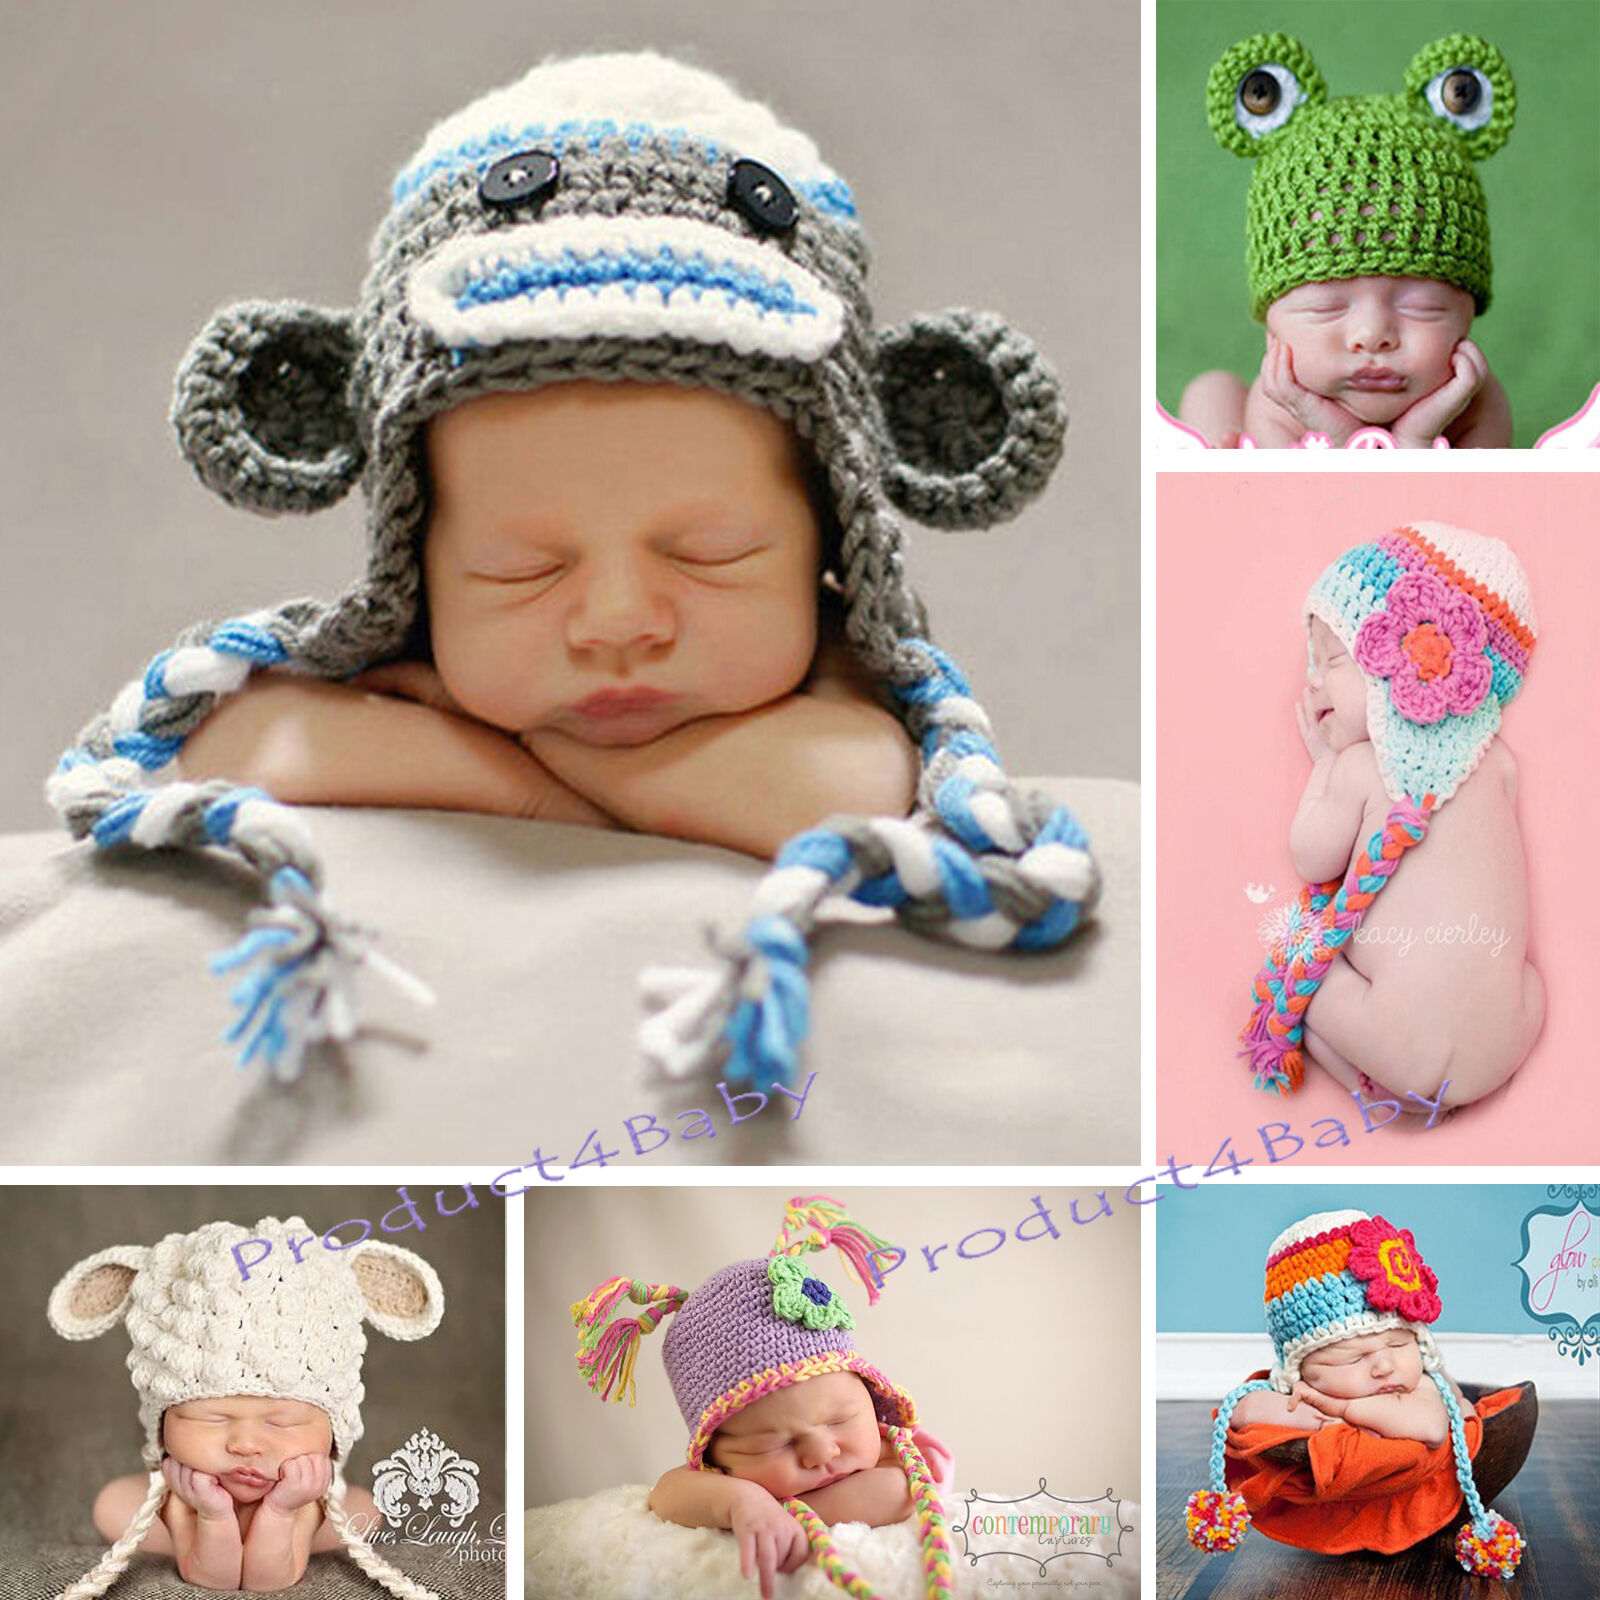 New Baby Boy Girl Crochet Beanie Costume Hat 0-3, 3-6, 6-12M,1-3Yrs Photo Props